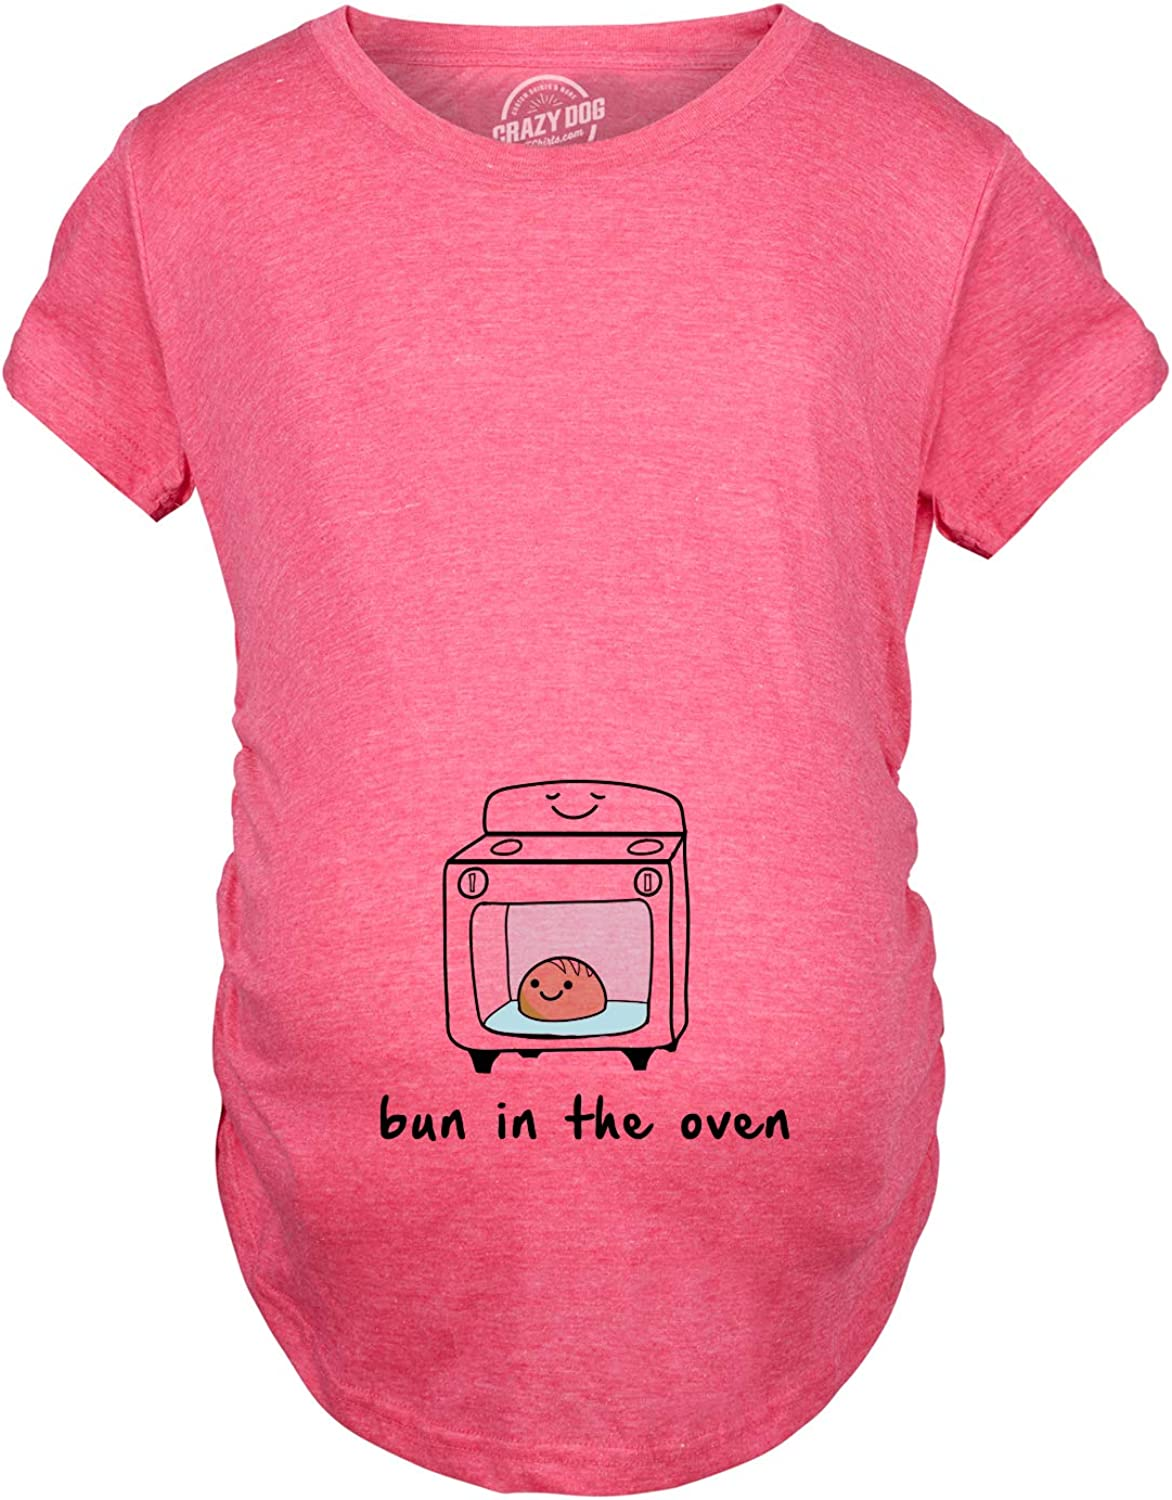 Maternity Bun in The Oven T Shirt Funny Pregnancy Announcement Tee